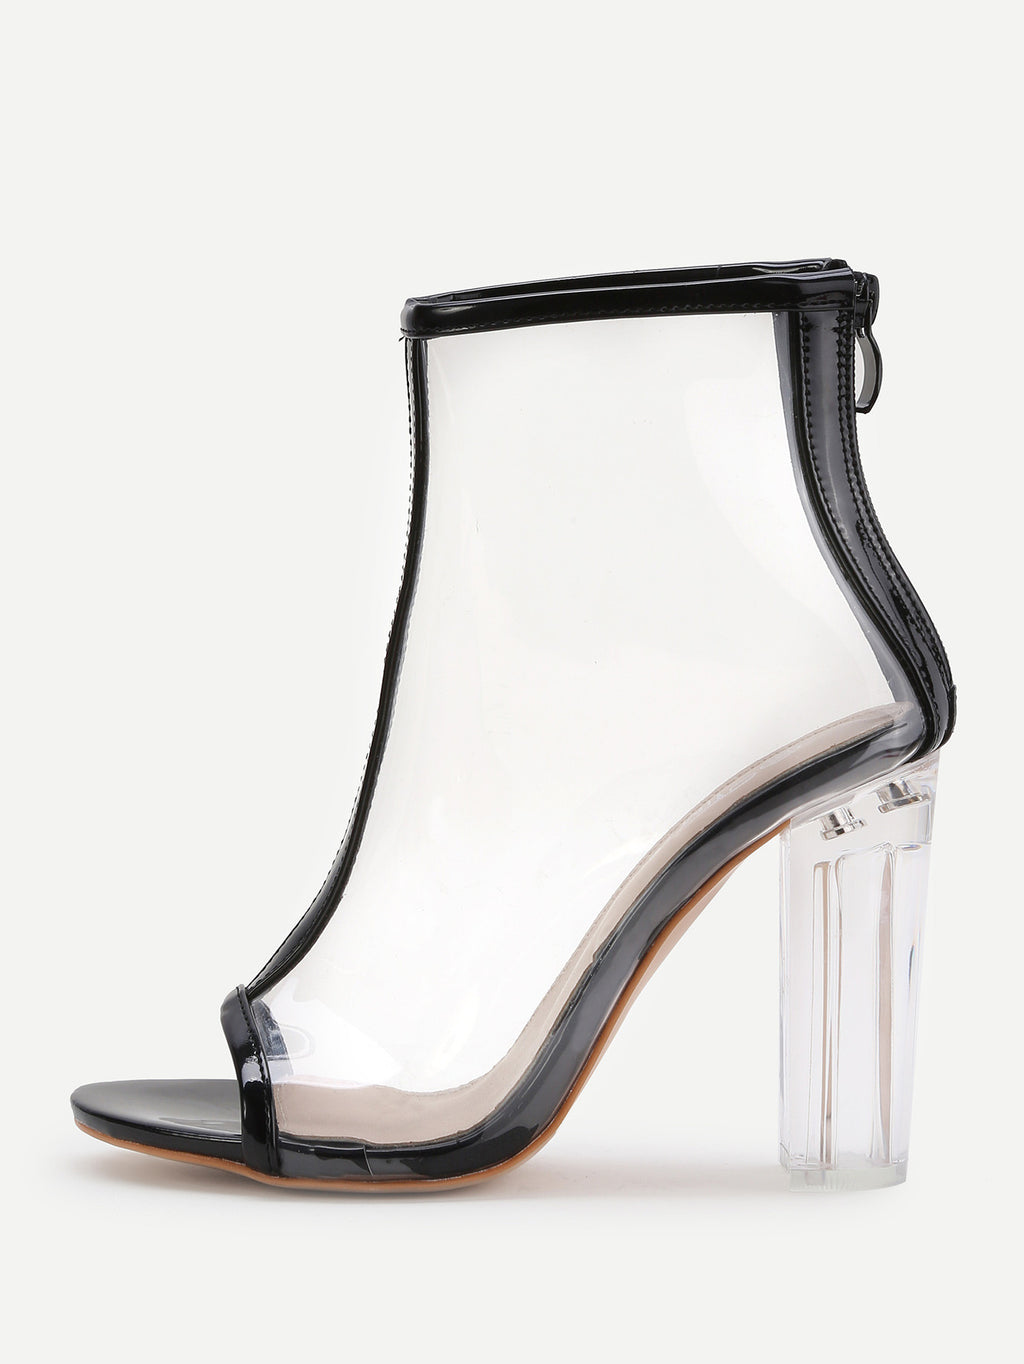 Kourtney clear black heels